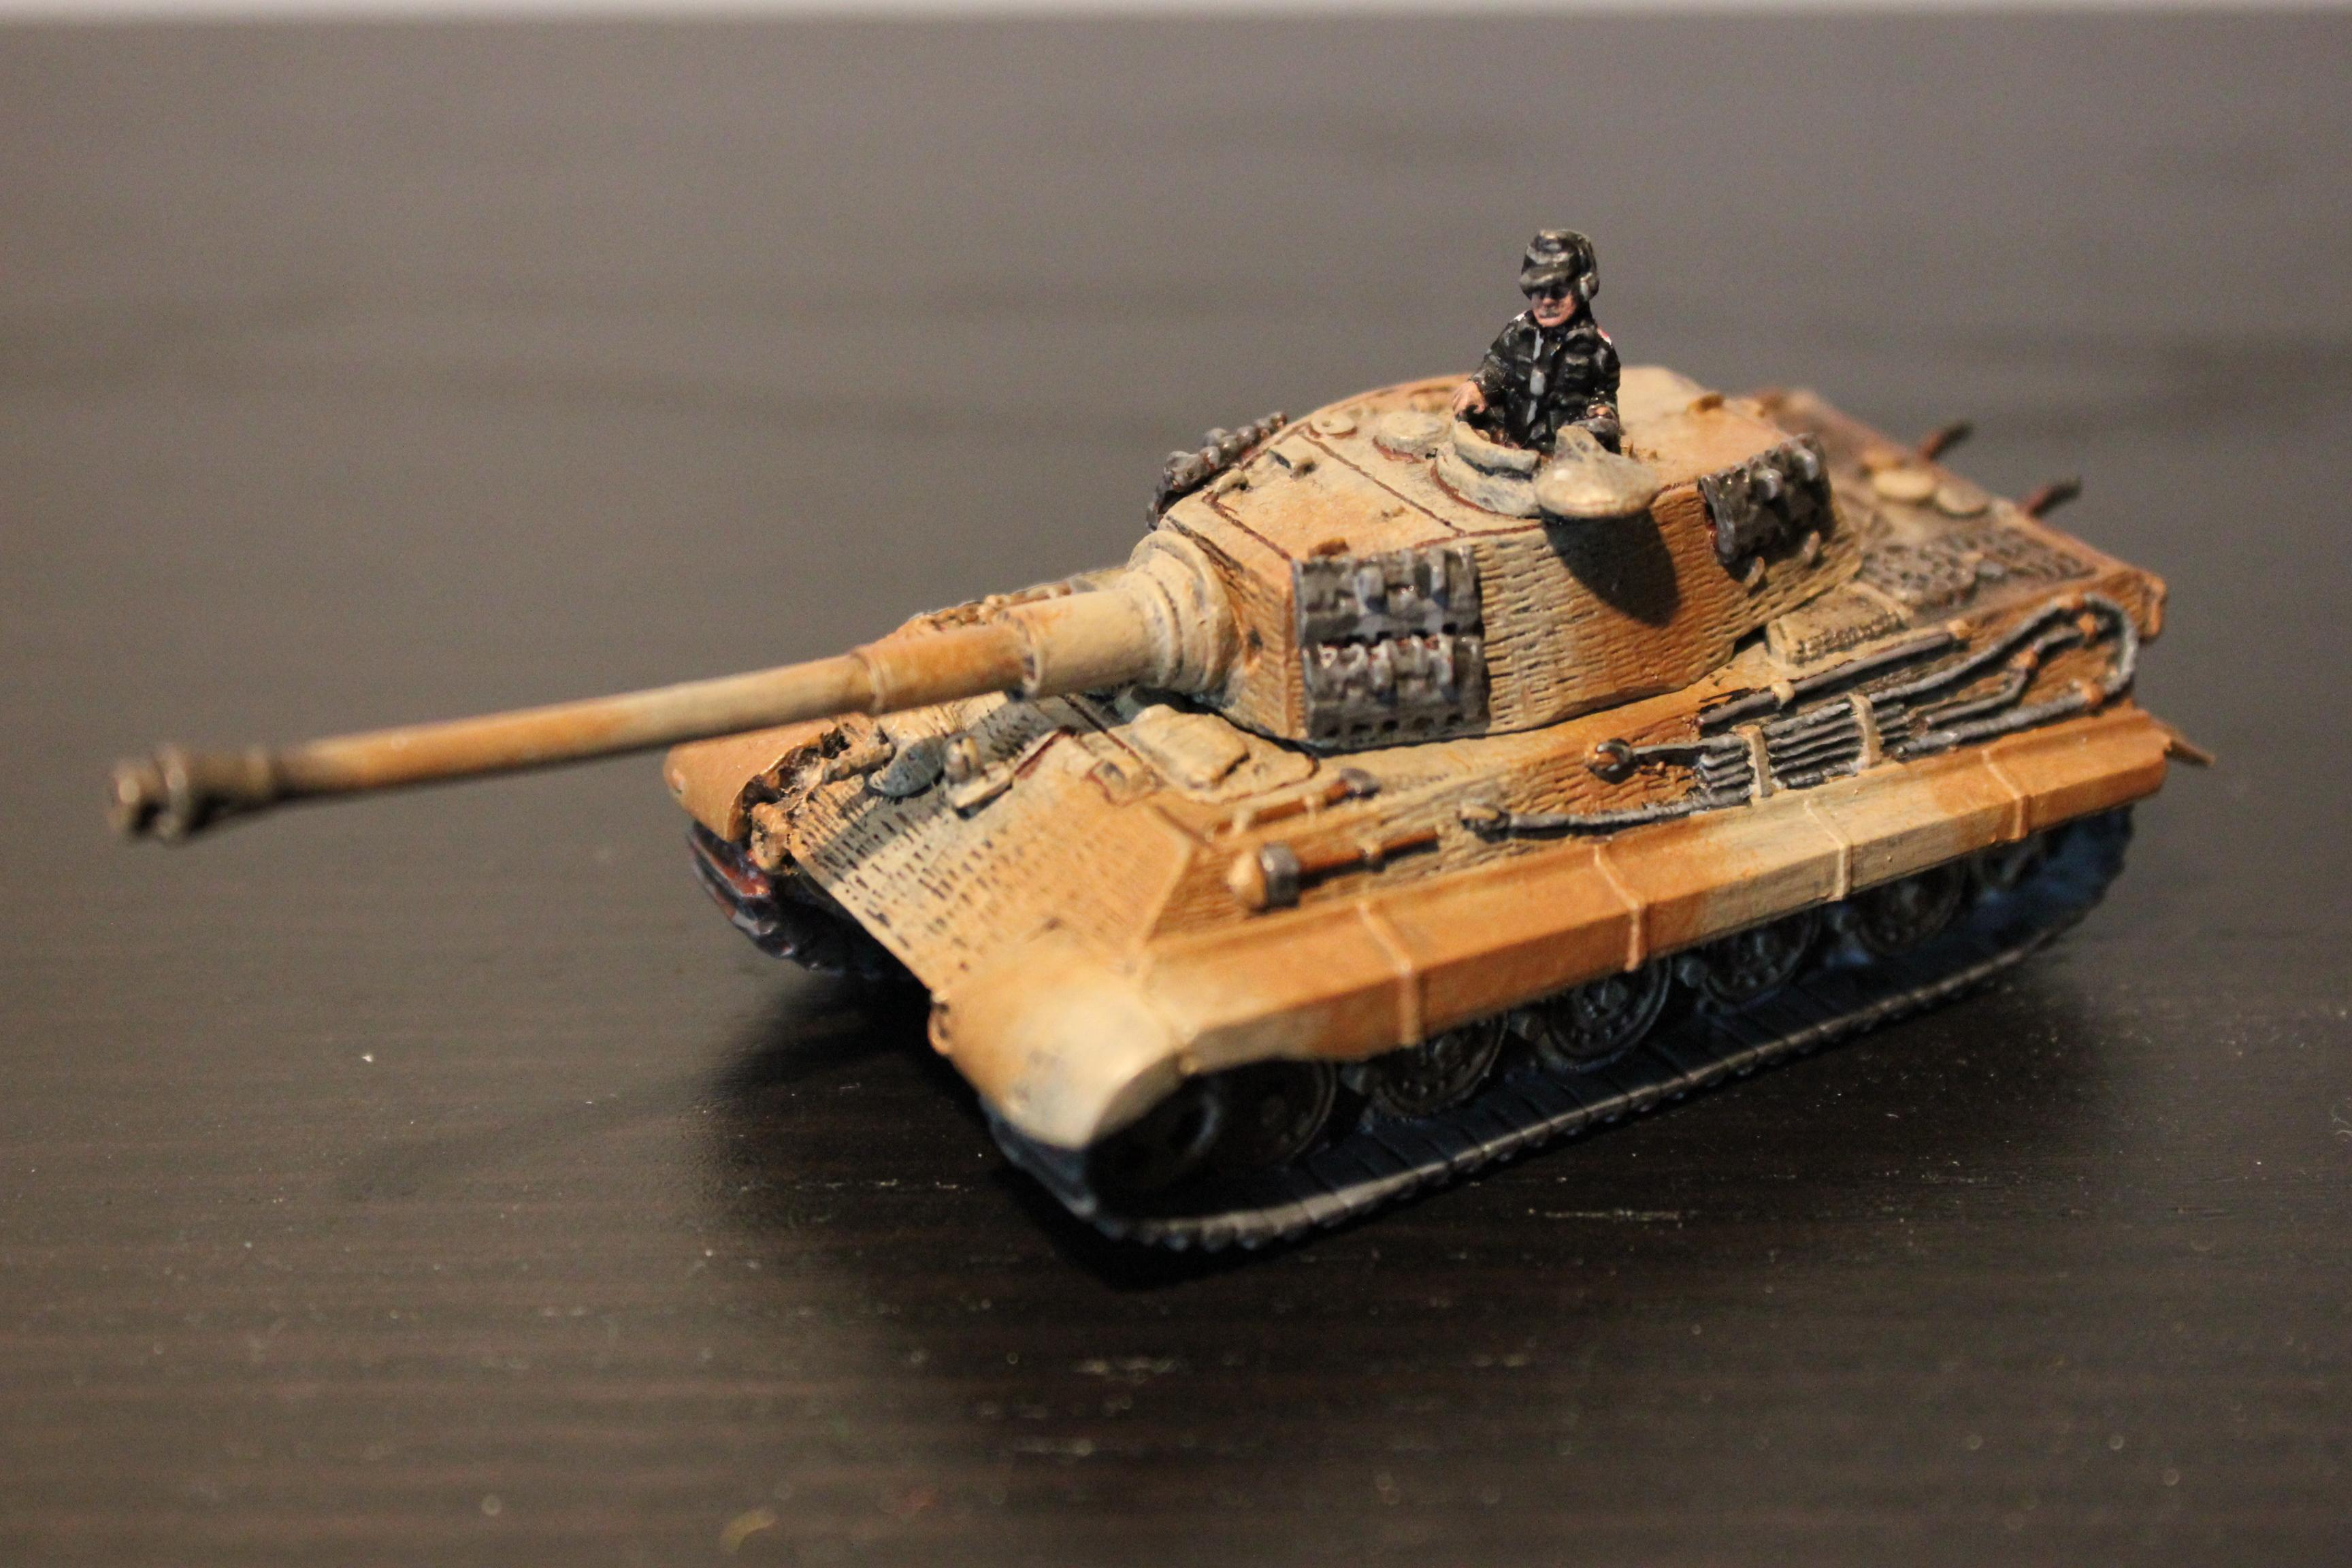 Flames Of War, Germans, Jagdtiger, King, King Tiger, Kt, Late War, Lw, Panzer, Stug, Stuh, Tank, Tiger, World War 2